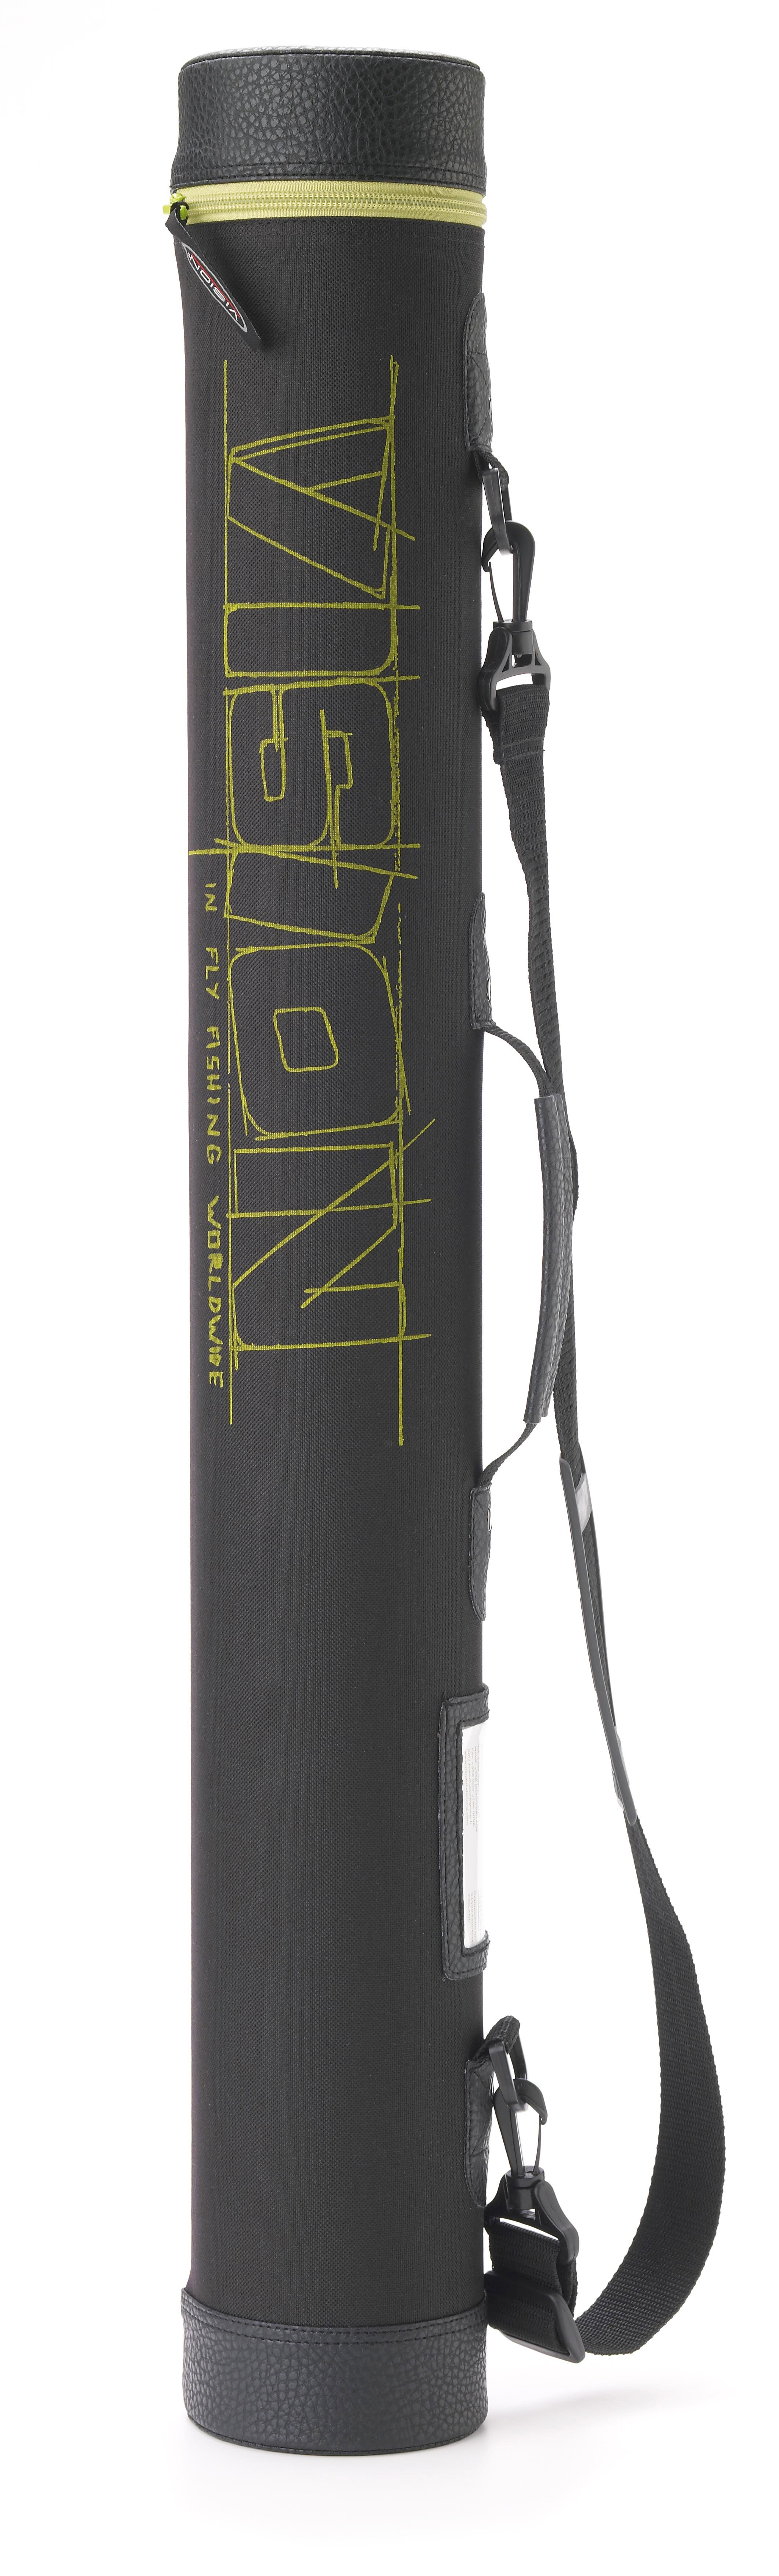 Vision travel tubes glasgow angling centre for Fishing pole tubes